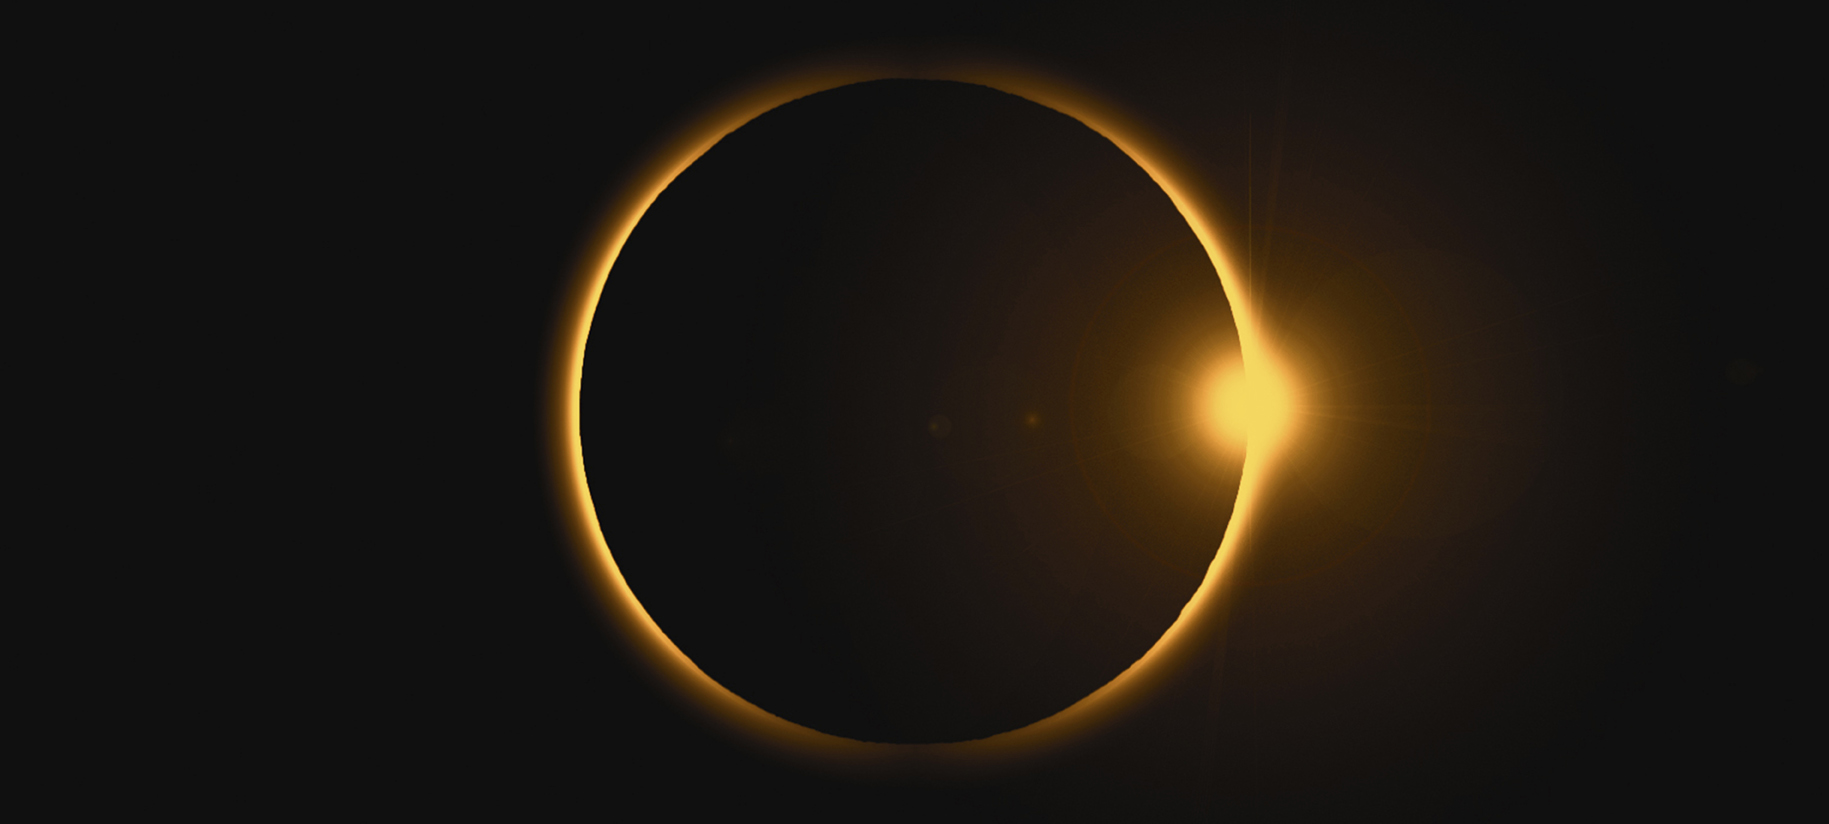 On March 9, 2016, tracking directly over the Equator above Indonesia's remote Maluku island group, a handful of guests aboard a classic two-masted sailing schooner will witness a total solar eclipse.